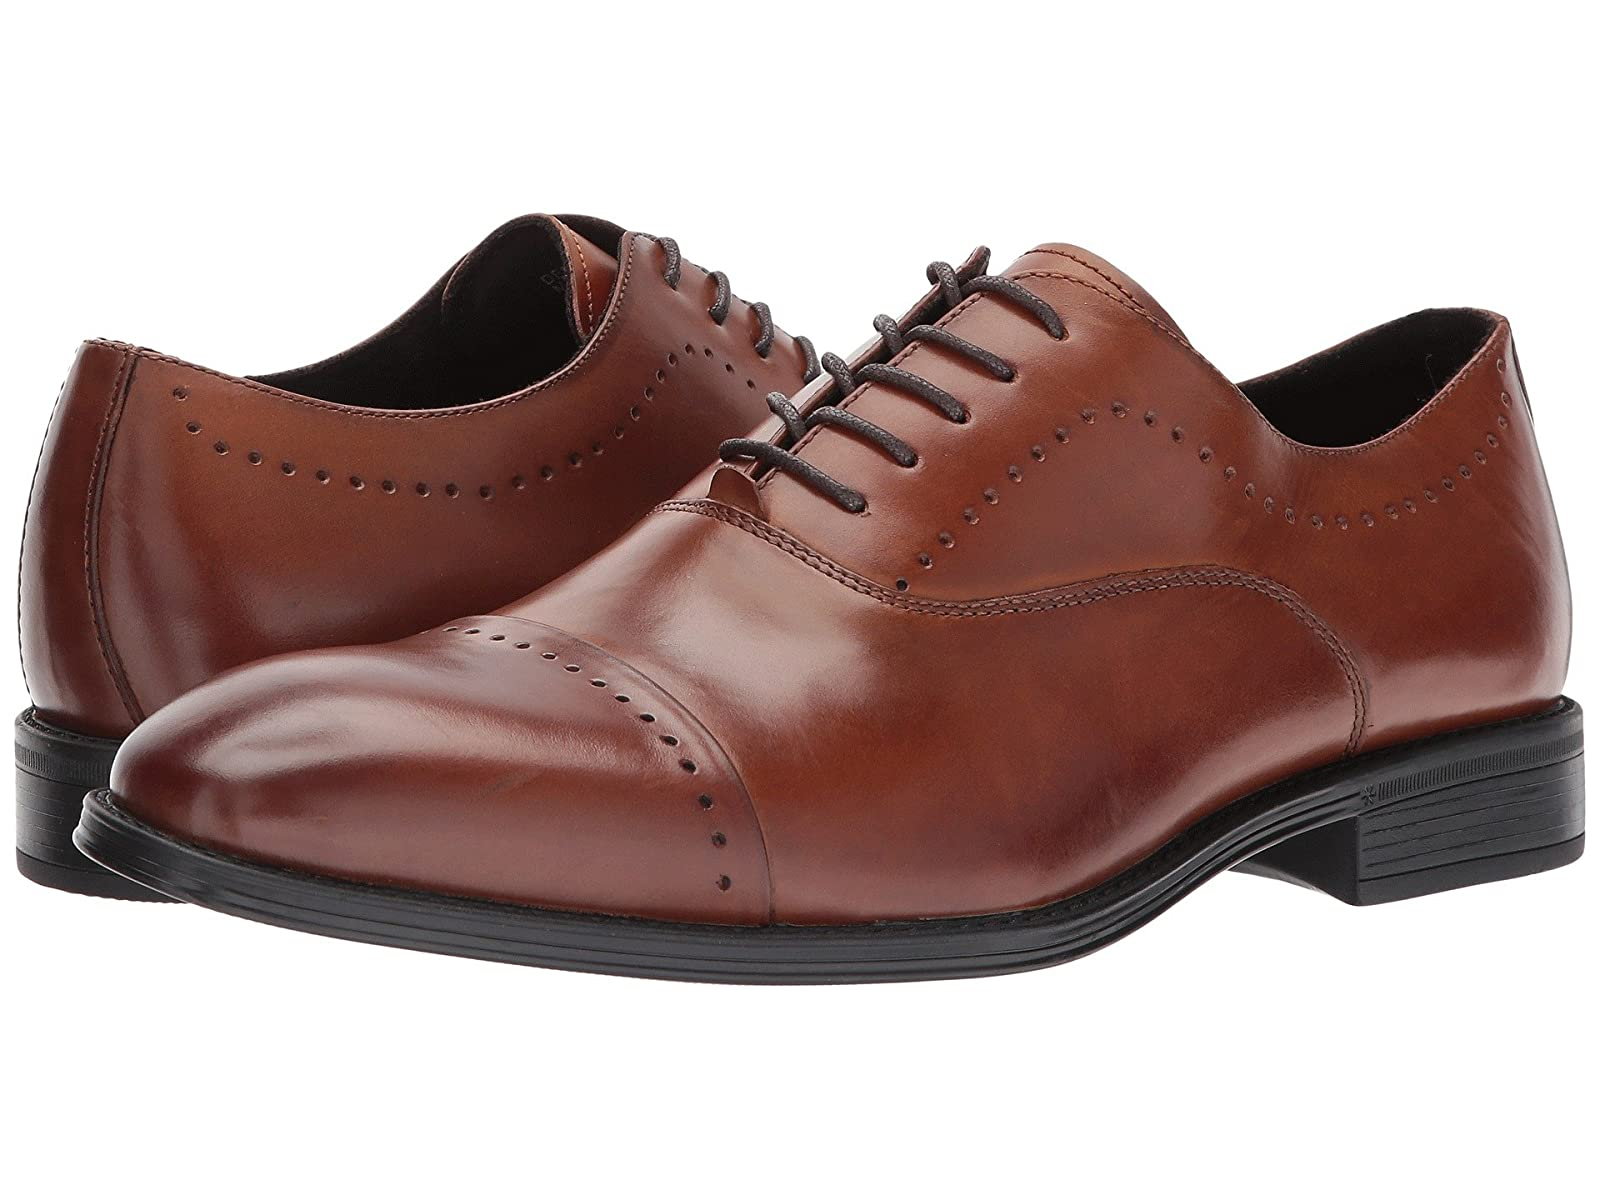 Kenneth Cole New York Design 102212Cheap and distinctive eye-catching shoes